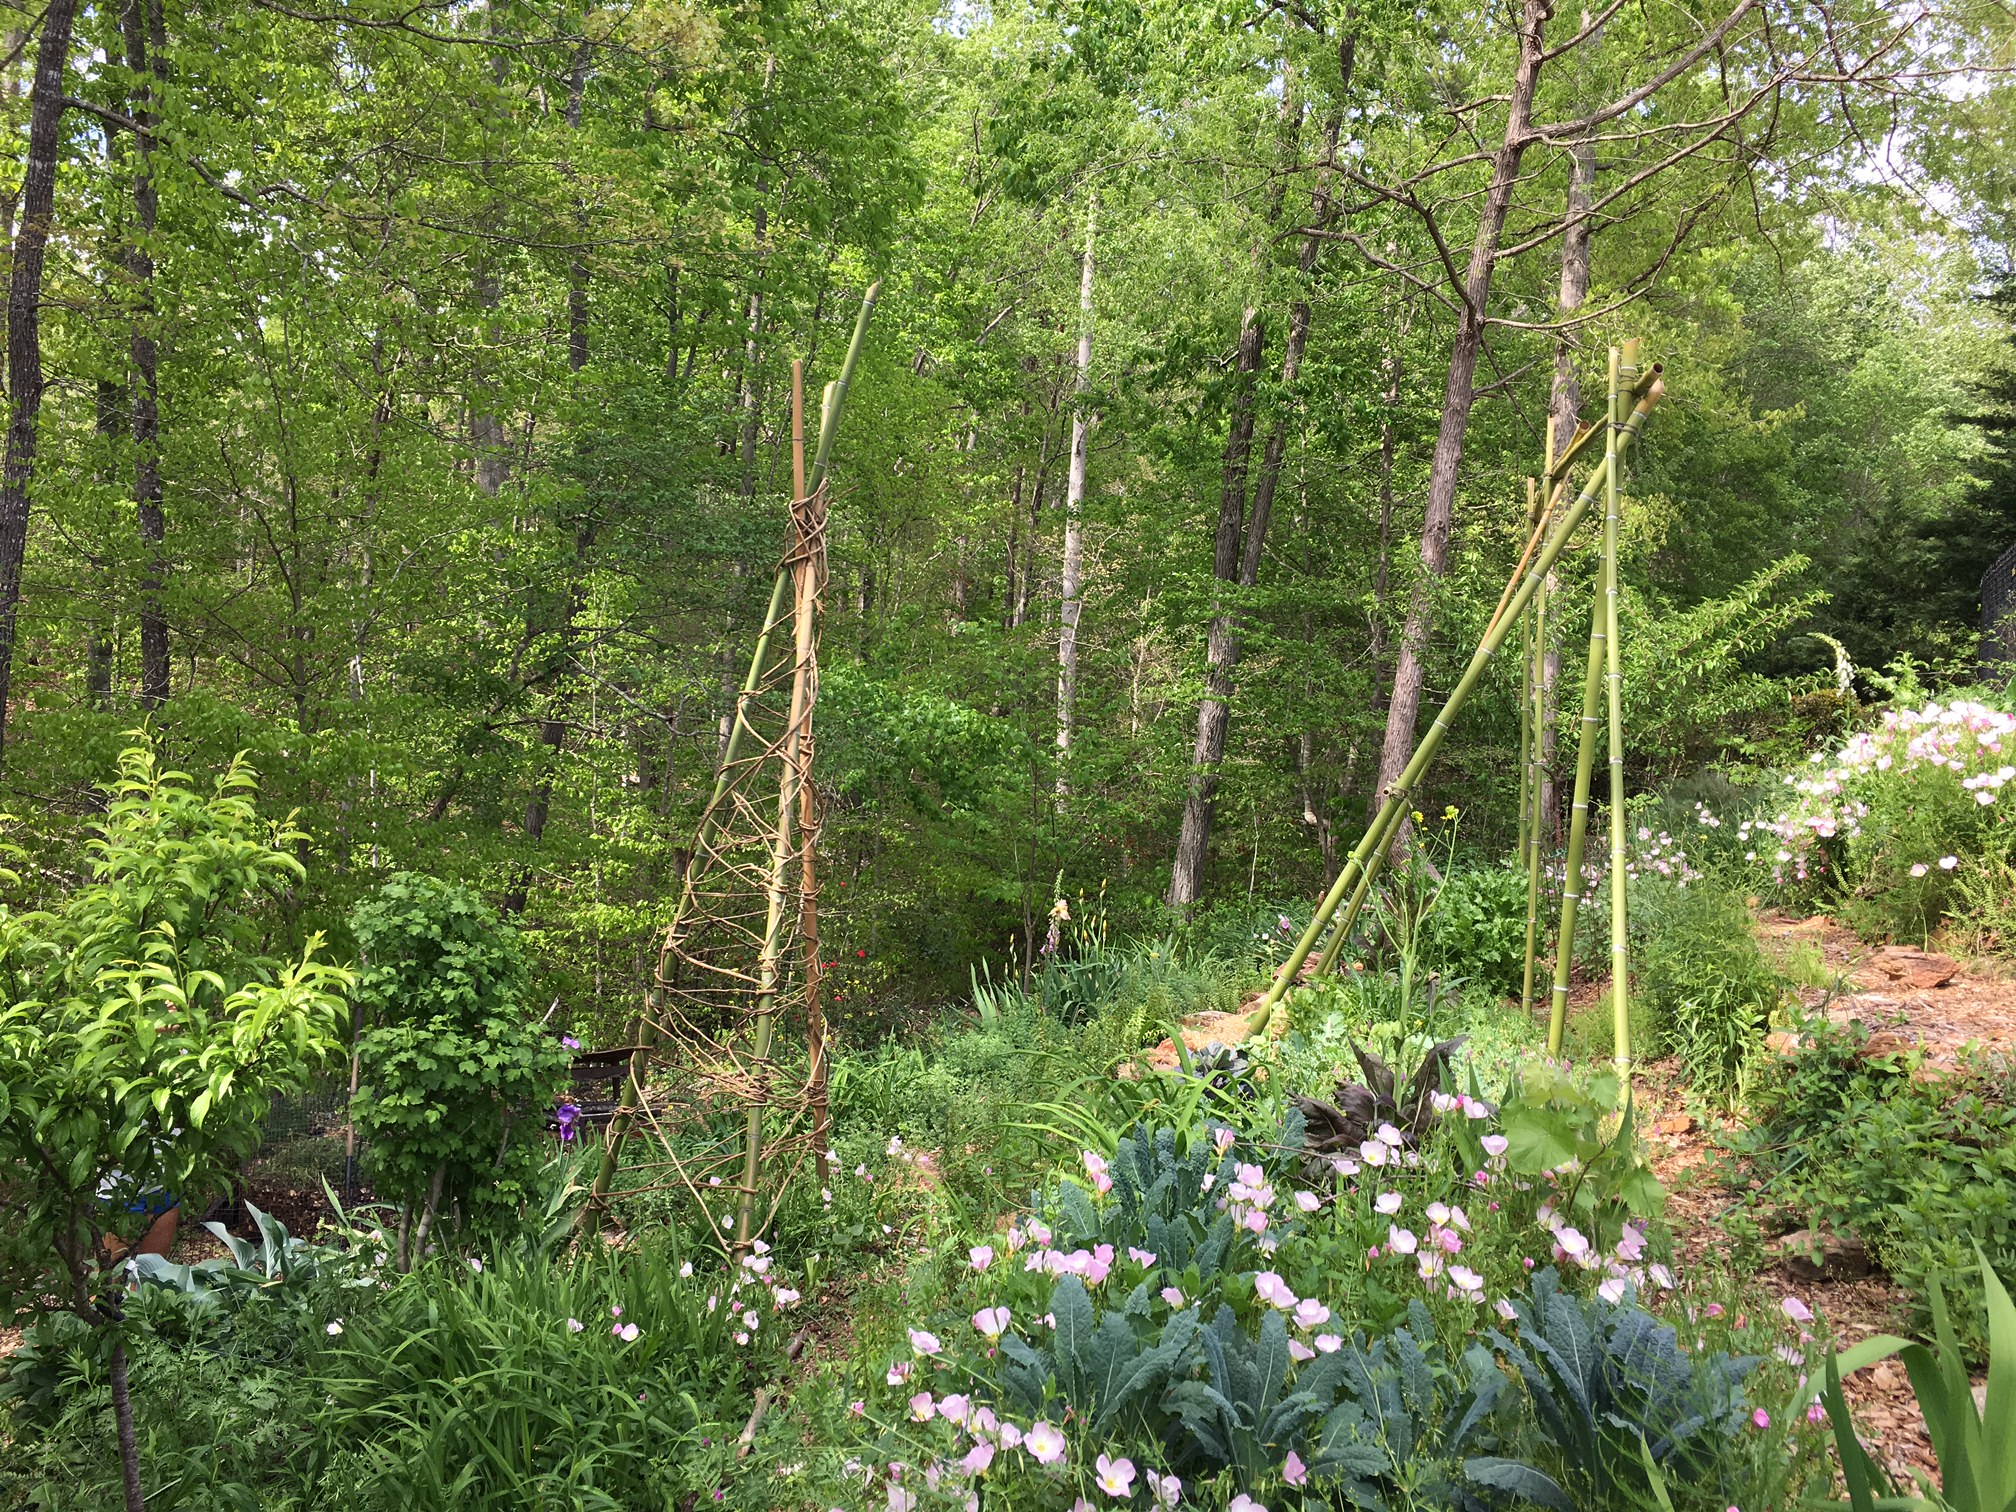 Bamboo and kudzu can be serious problems, but they can also be a great solution if you want to make trellises for climbing plants like beans, cucumbers, gourds, and others.